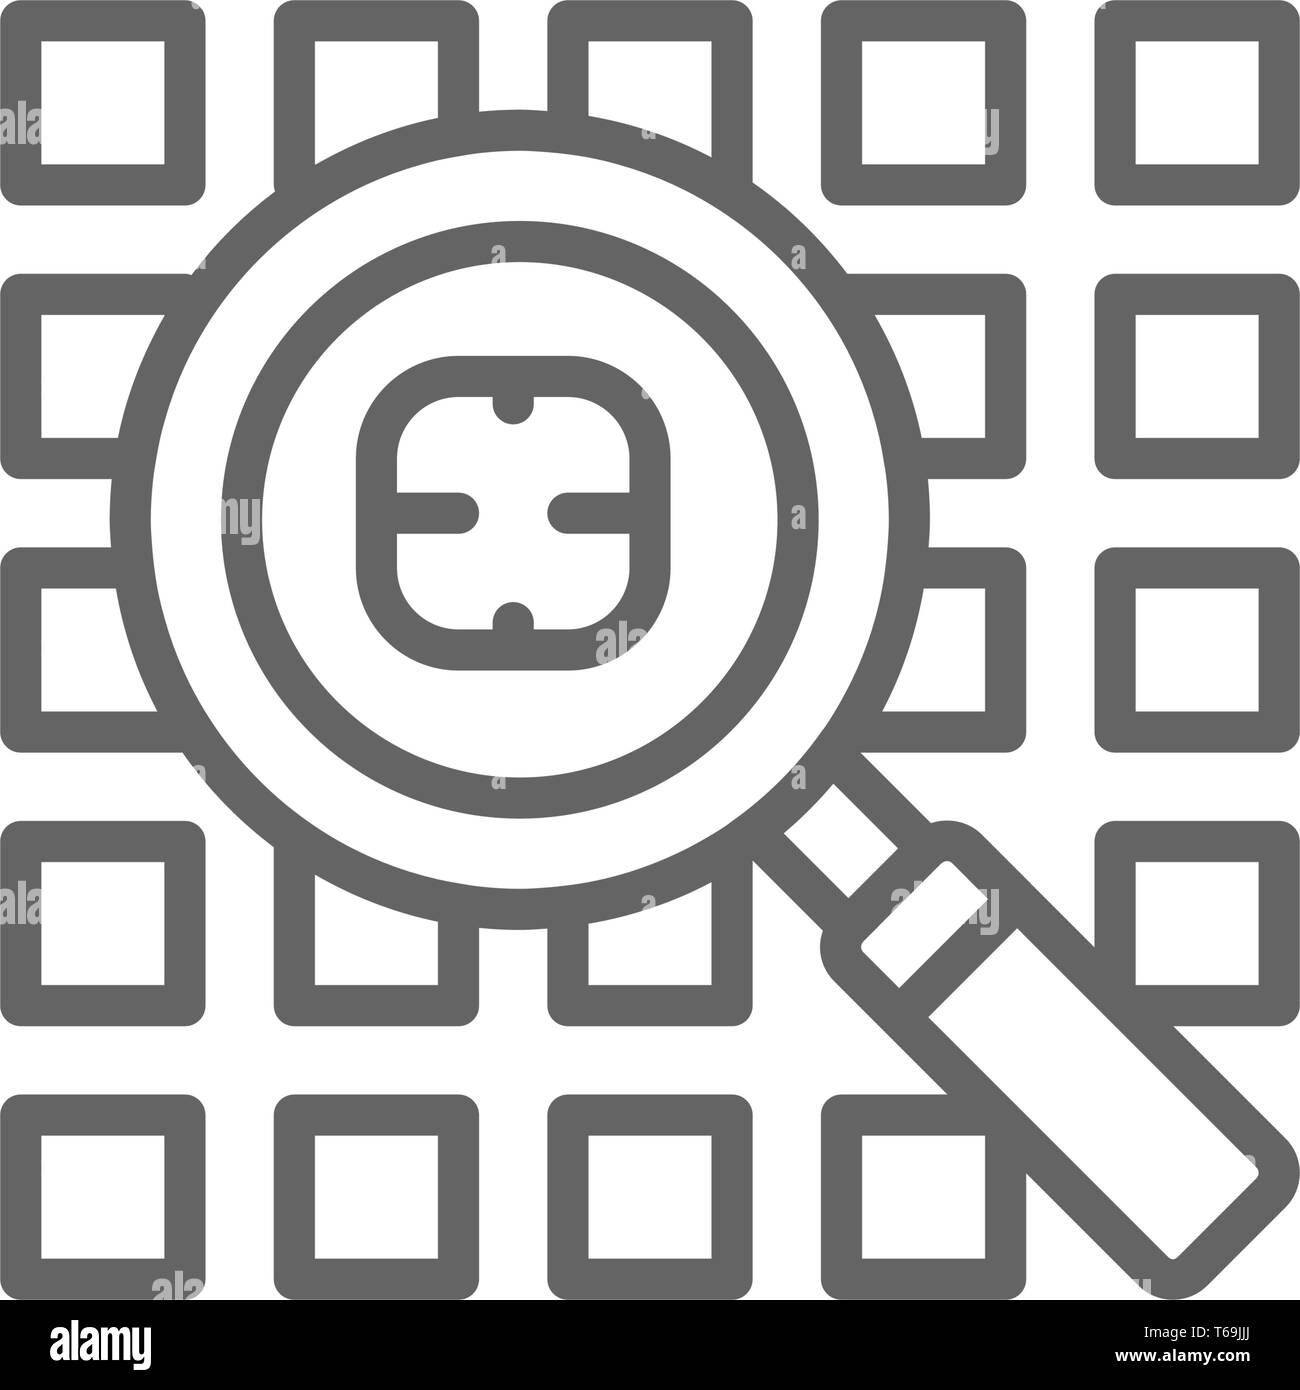 Computer virus search, security system line icon. - Stock Image